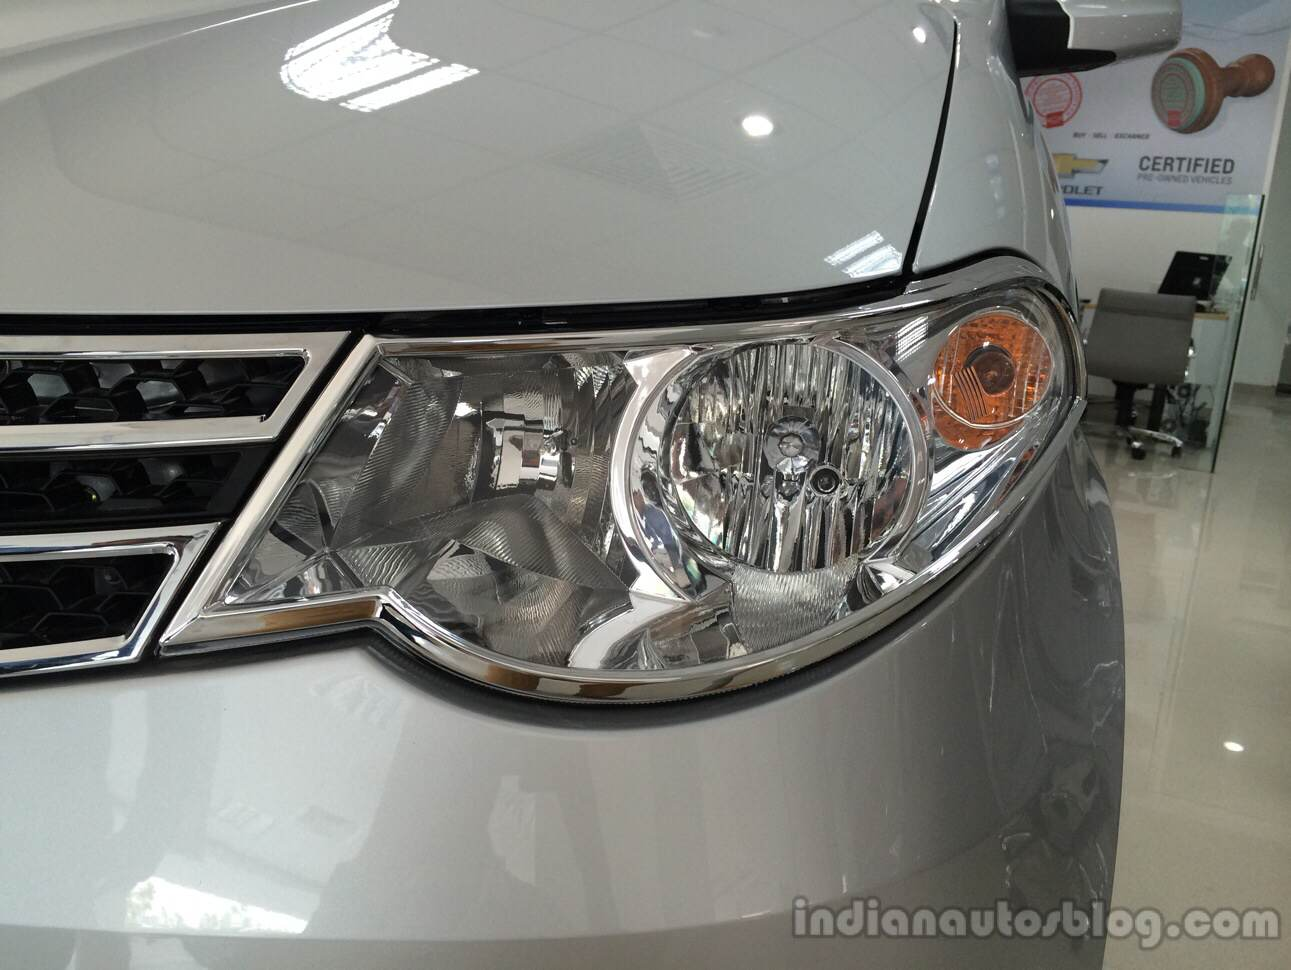 Chevrolet Enjoy 1st Anniversary Edition mirror